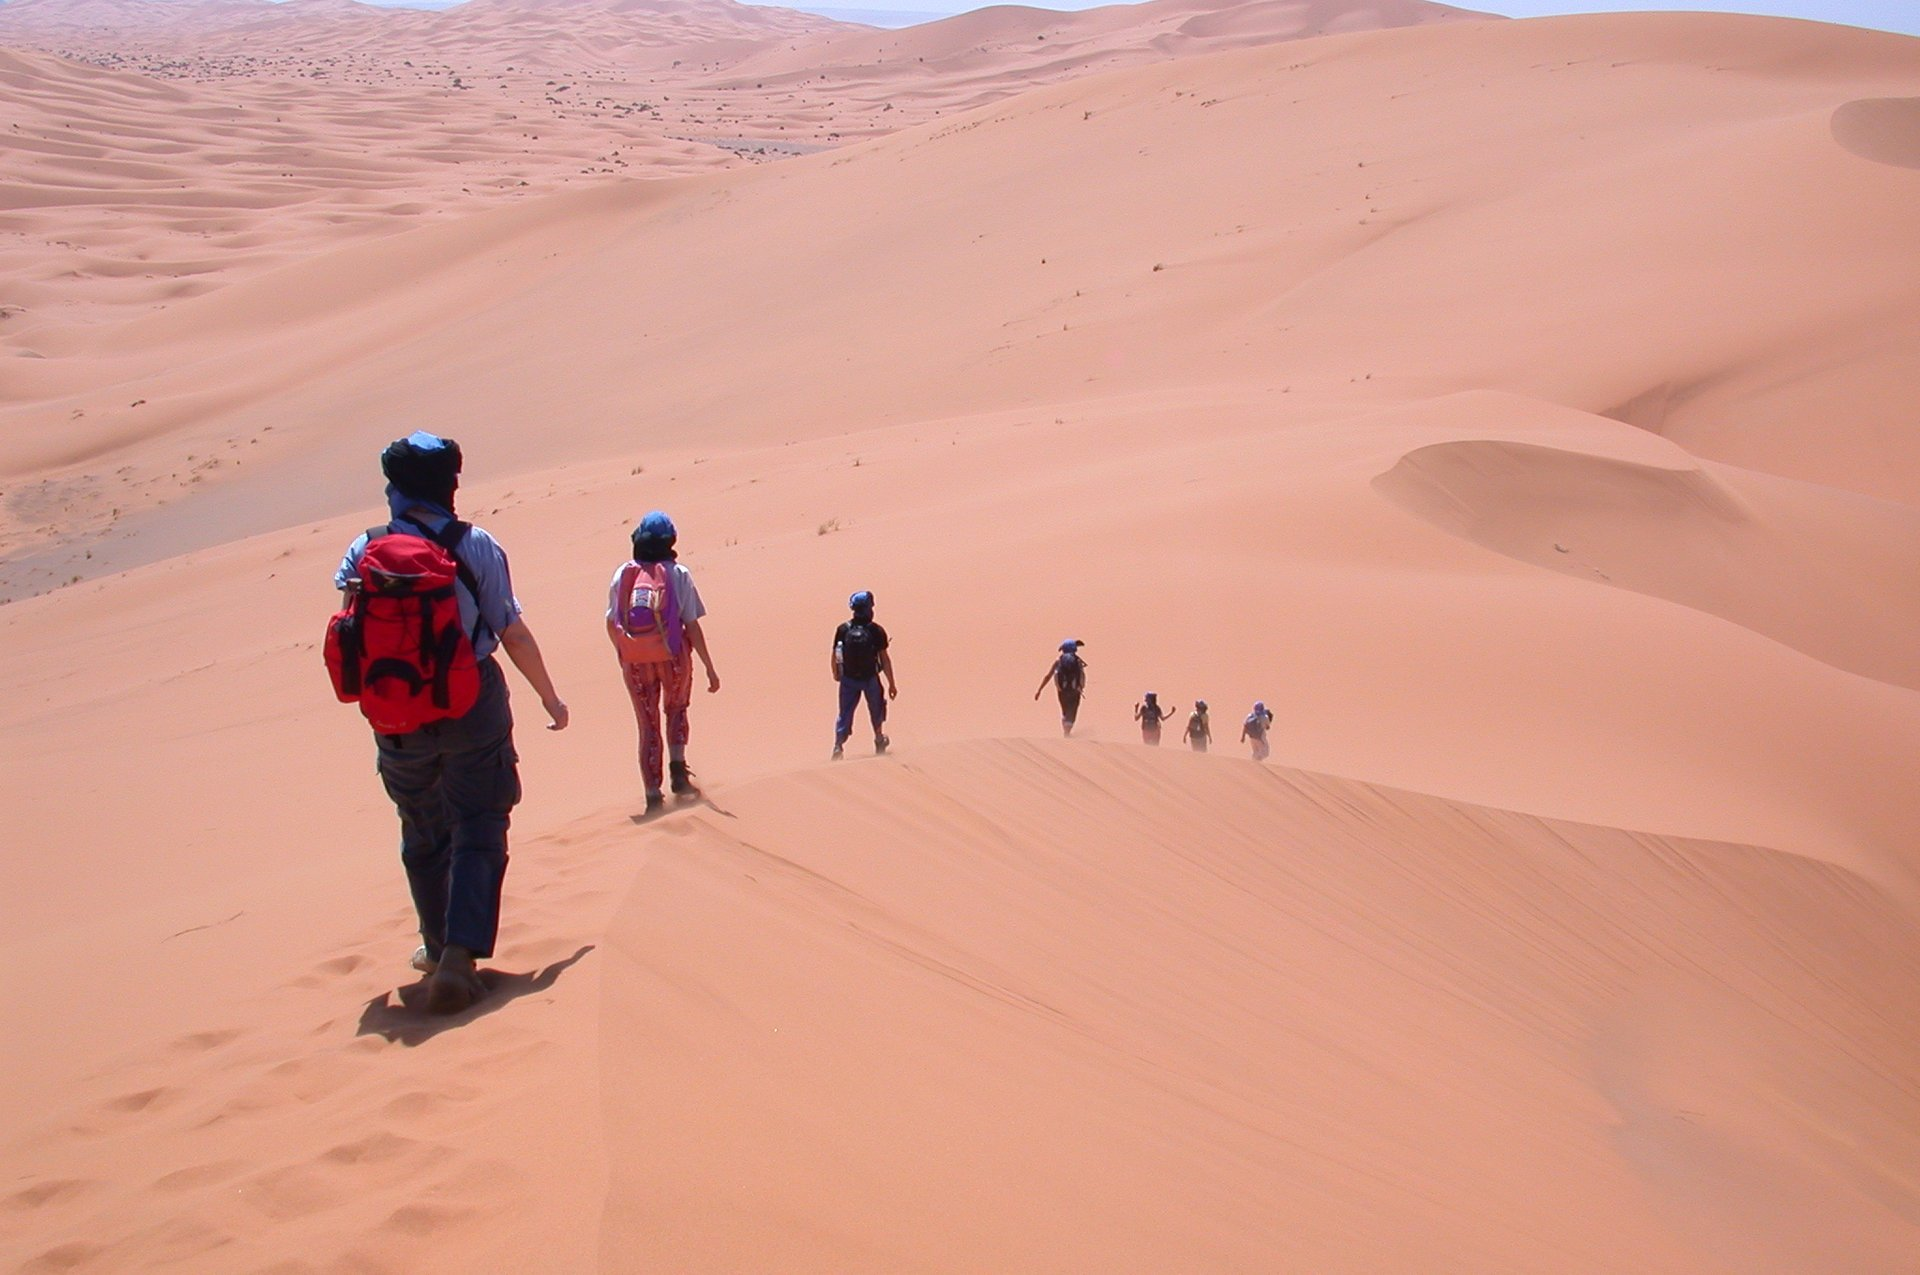 Desert Trekking in Morocco 2019 - Best Time